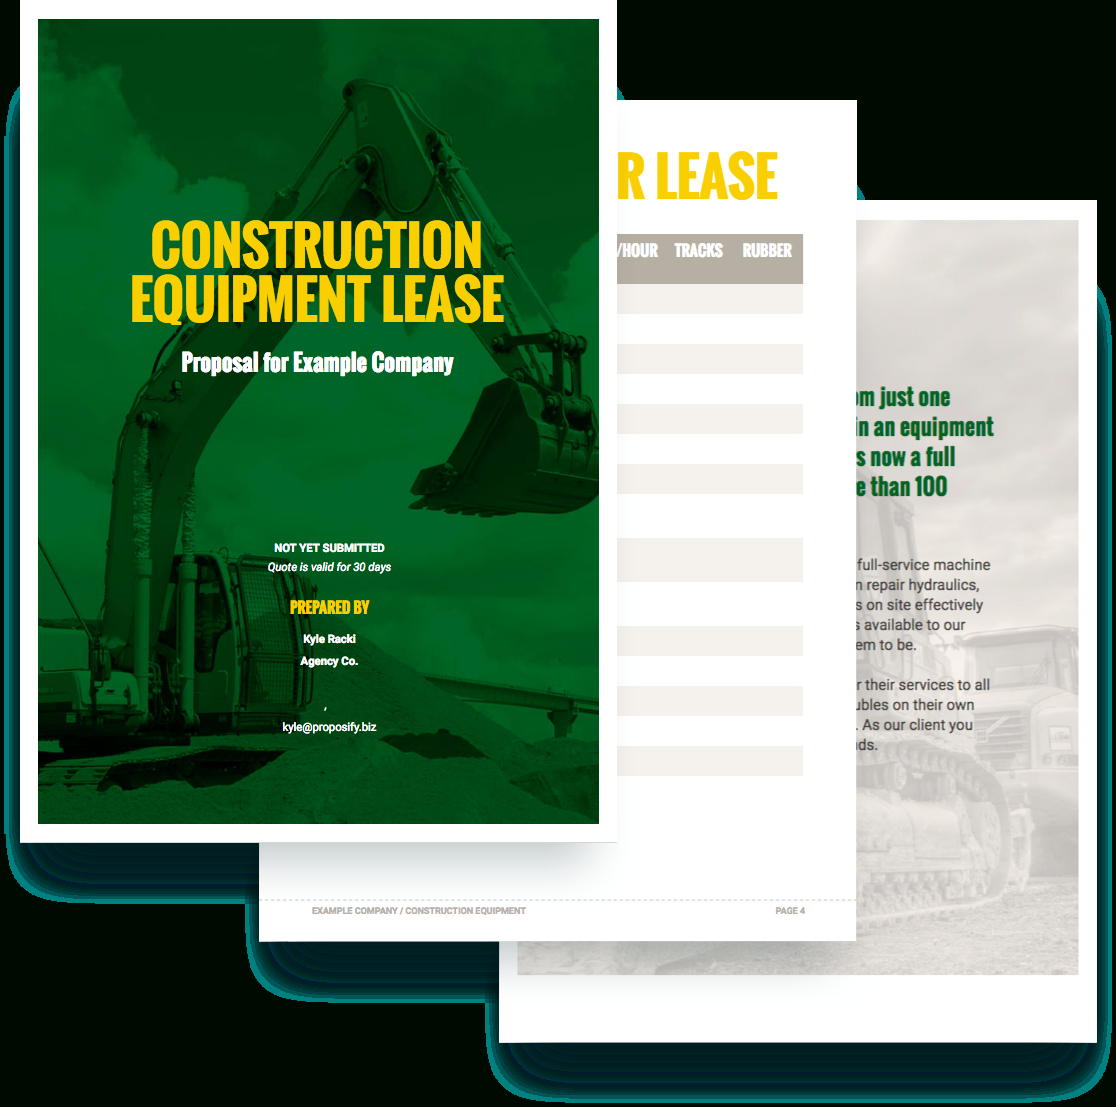 Construction Equipment Proposal Template - Free Sample In Equipment Proposal Template